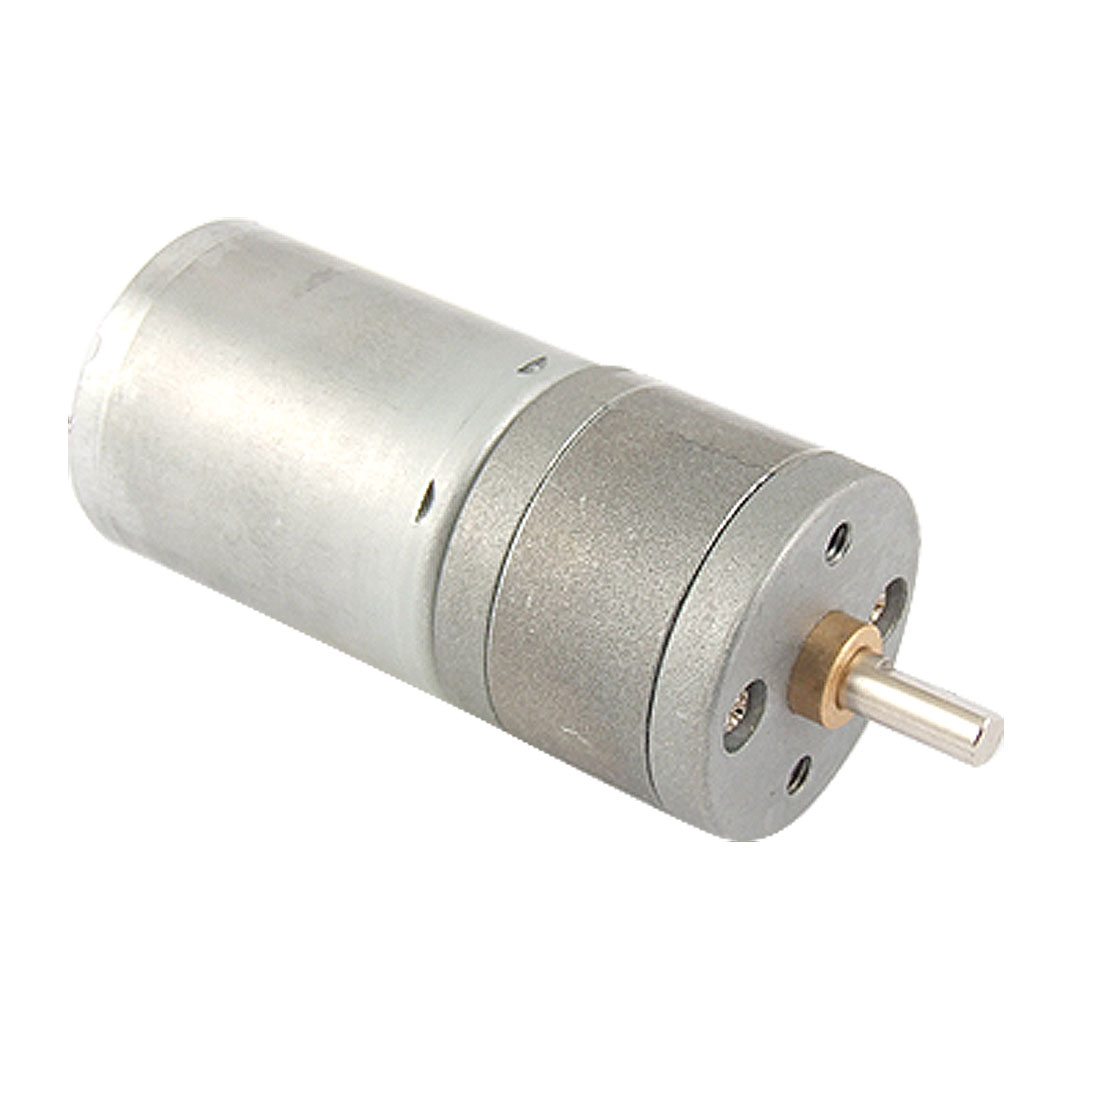 4mm Dia Shaft 25mm Gearbox DC12V 40-50mA 60RPM DC Gear Motor